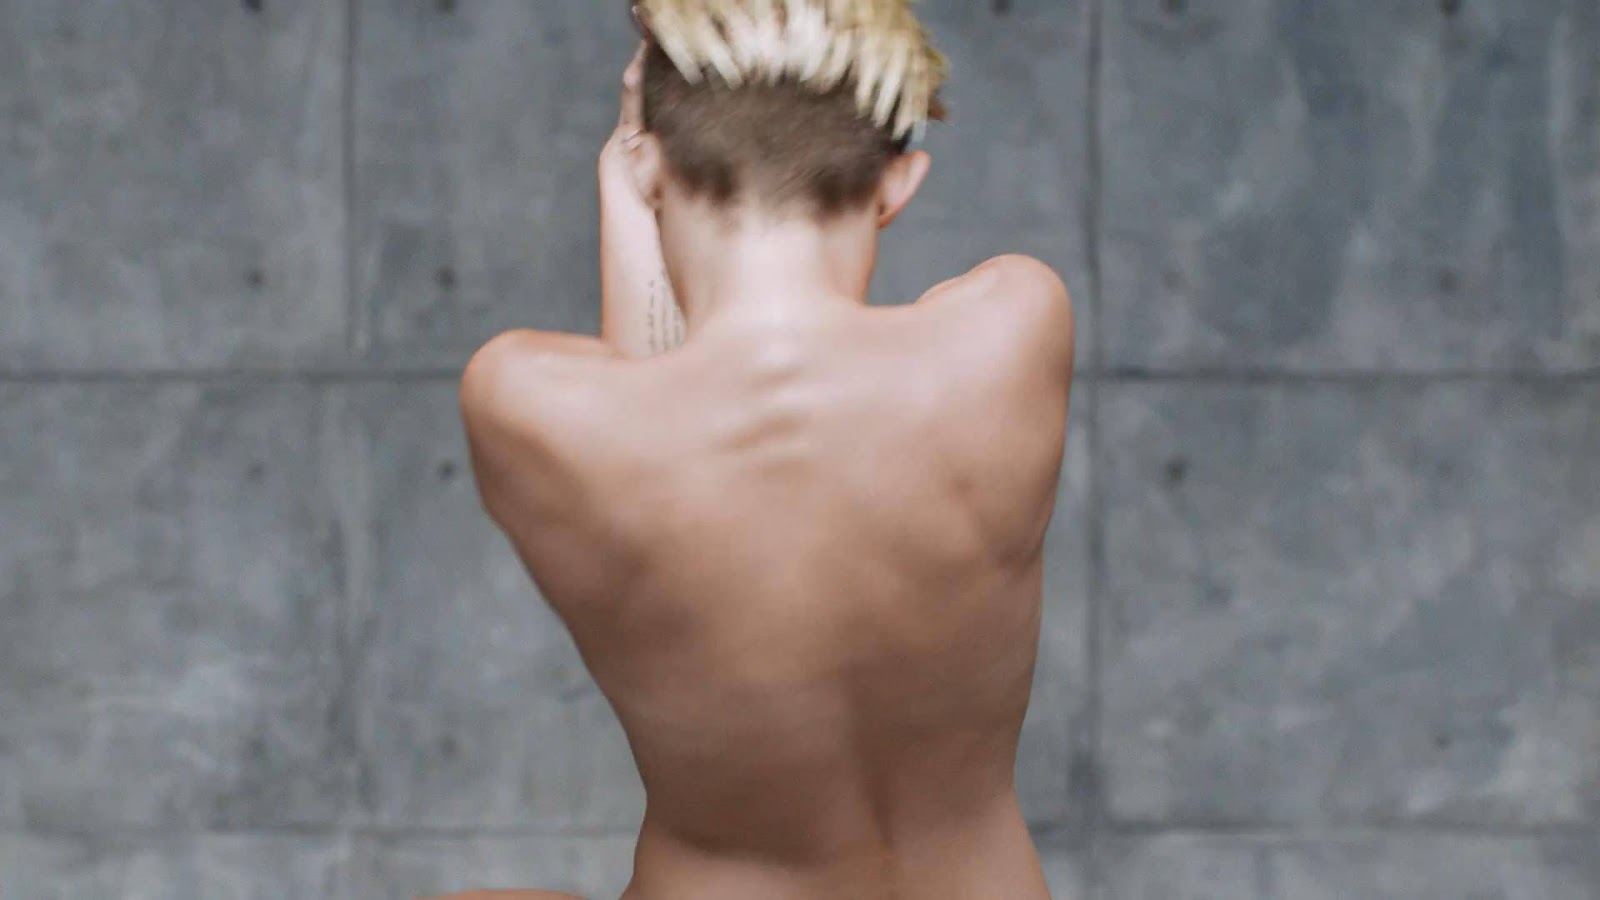 Miley cyrus topless uncensored-9061